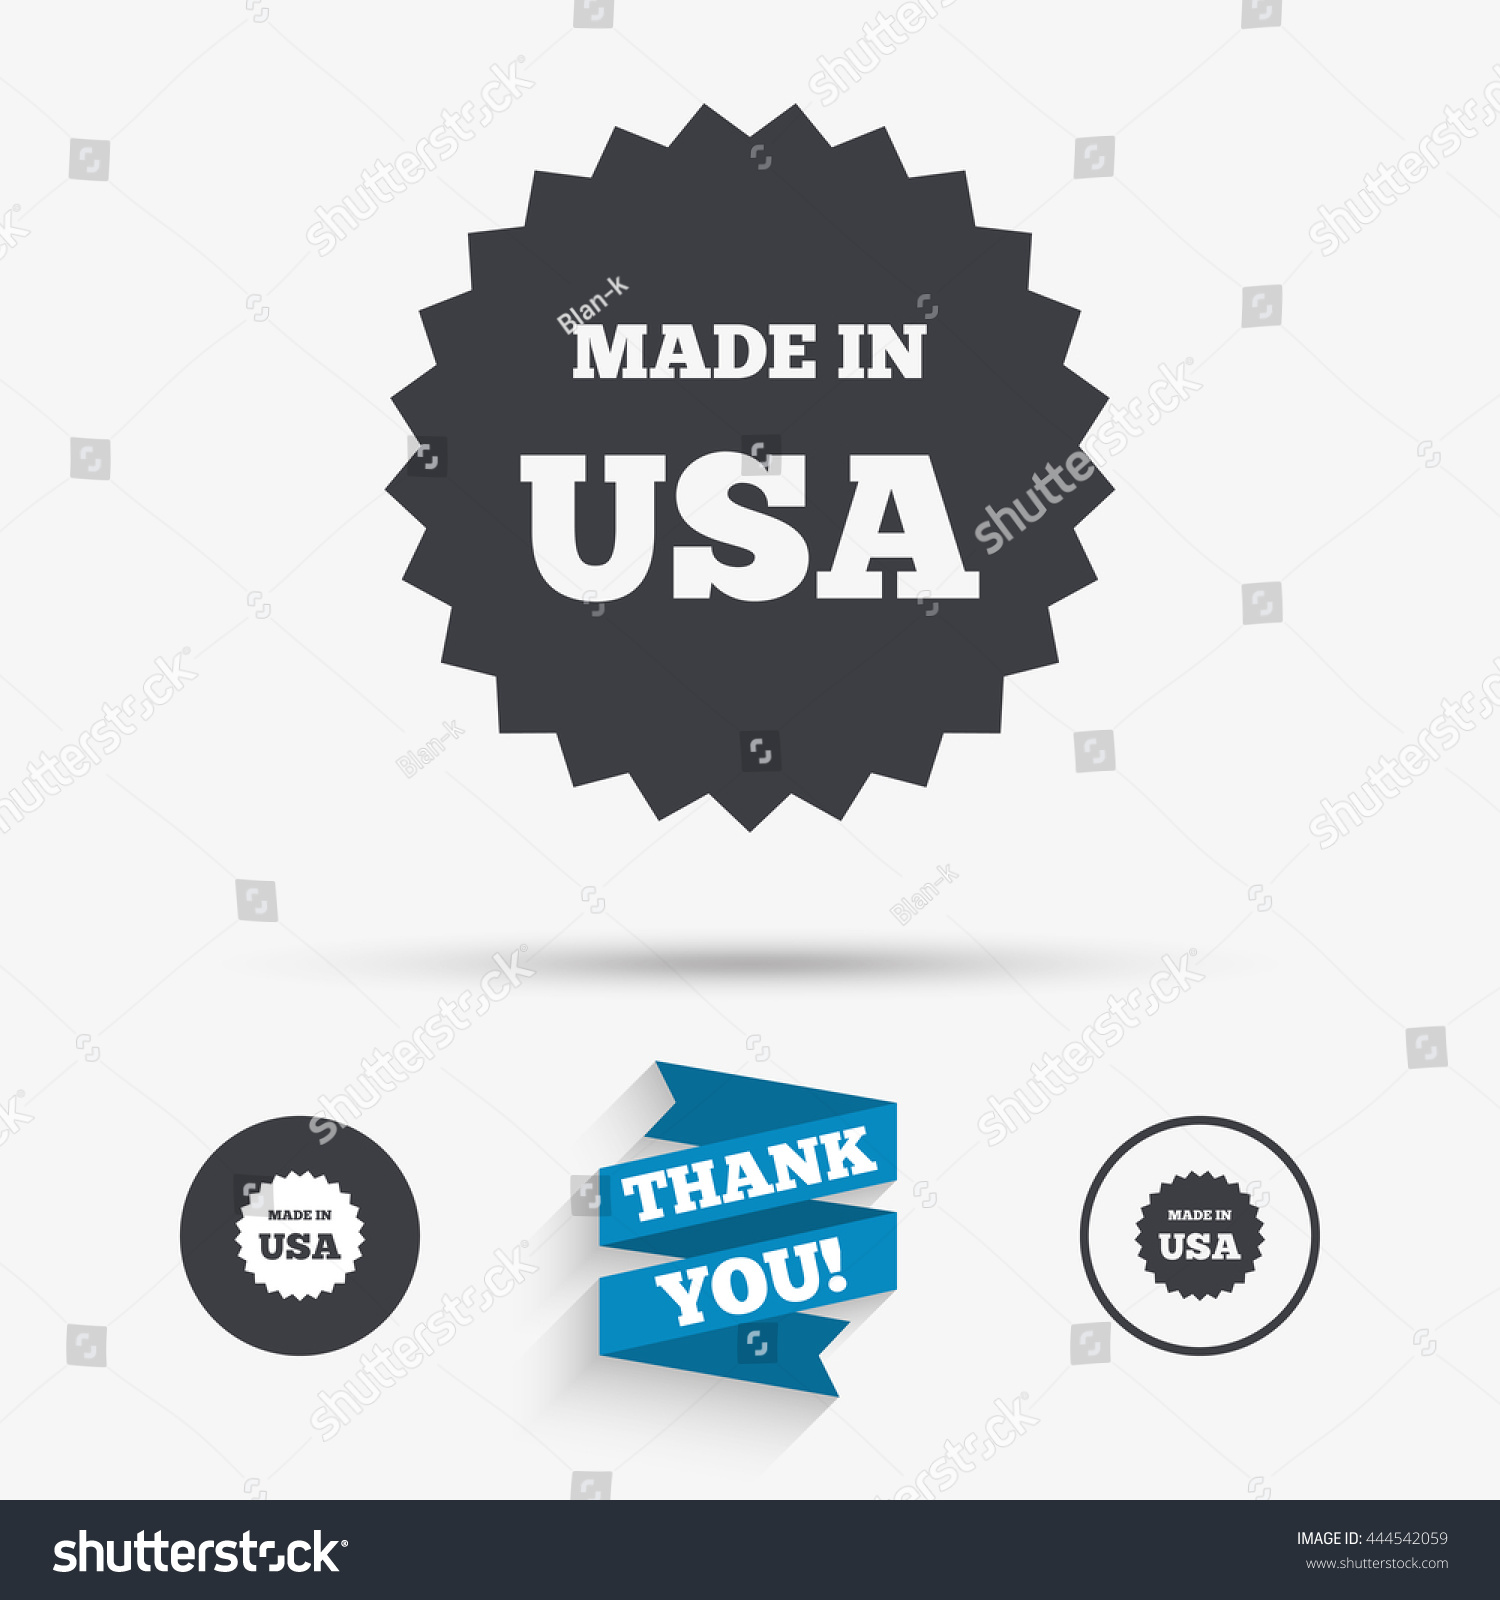 Made usa icon export production symbol stock vector 444542059 made in the usa icon export production symbol product created in america sign buycottarizona